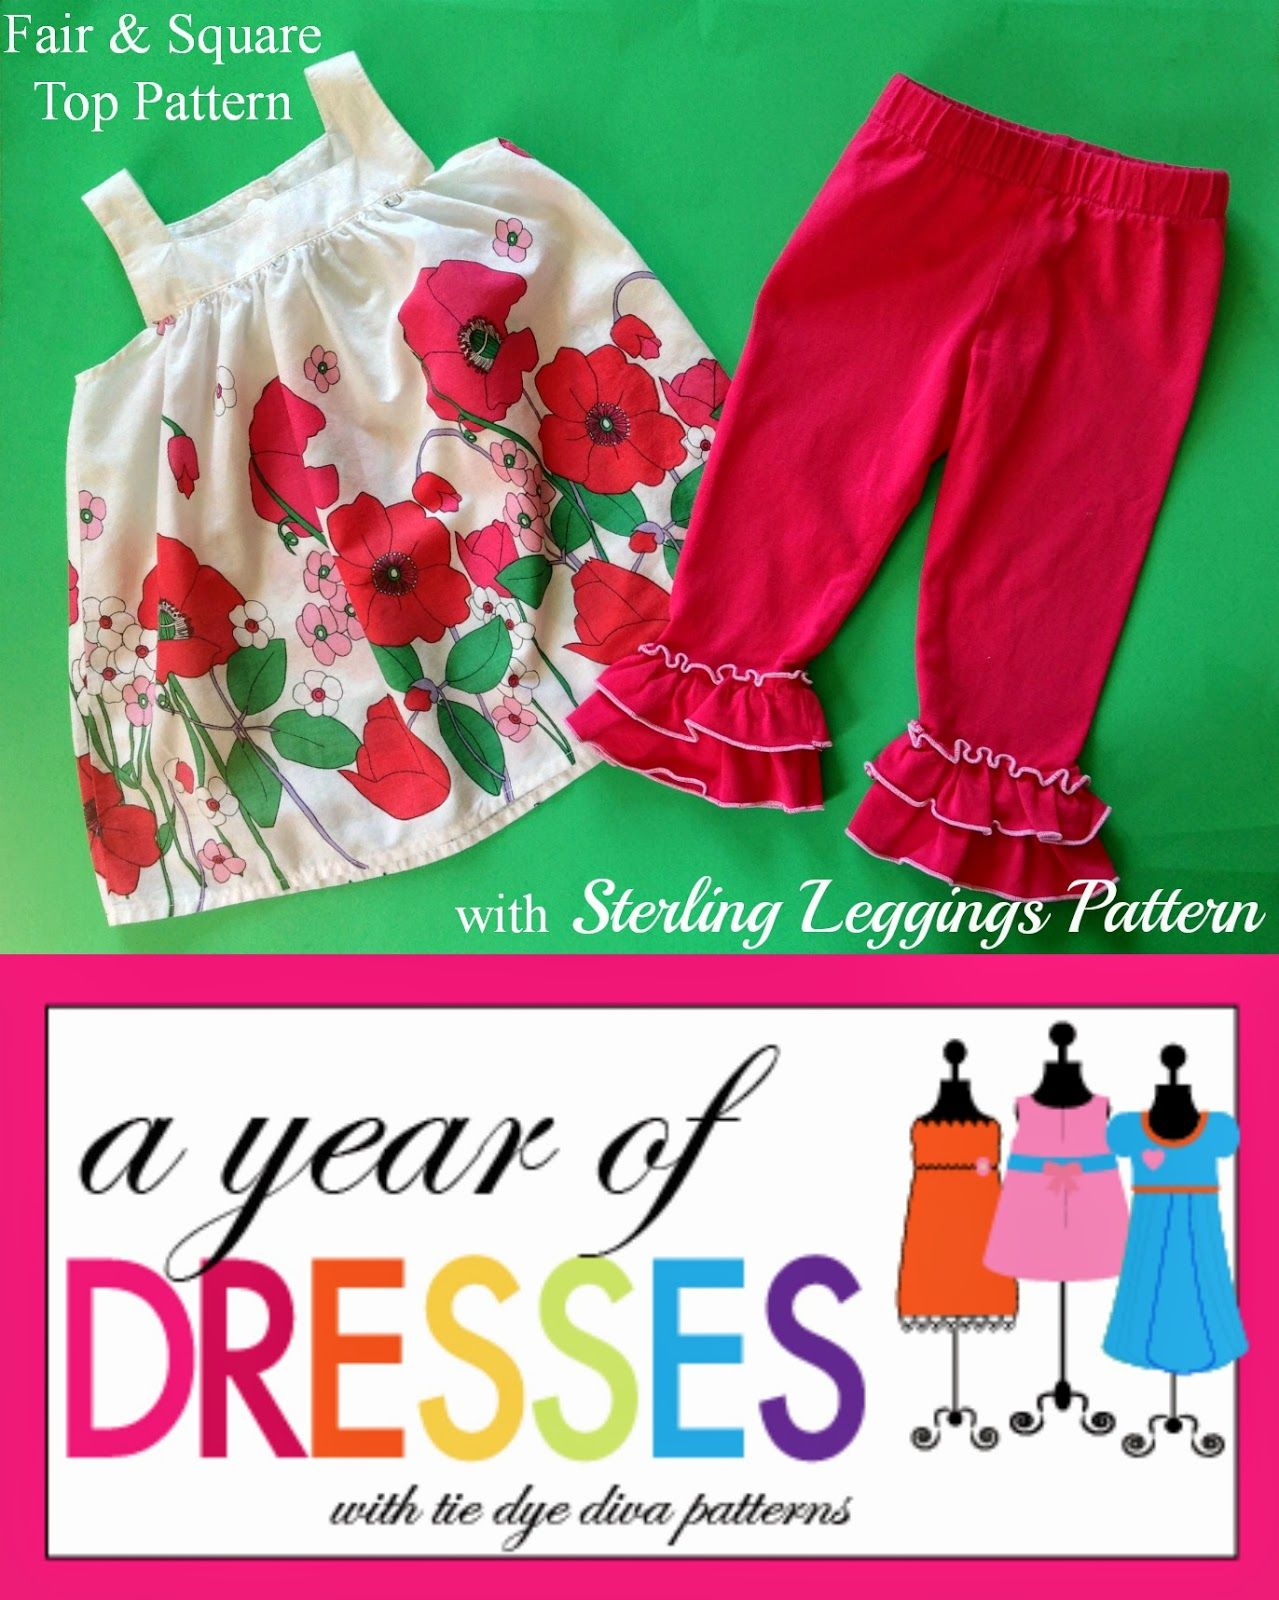 A Year of Dresses: Fair and Square Top with Sterling Leggings